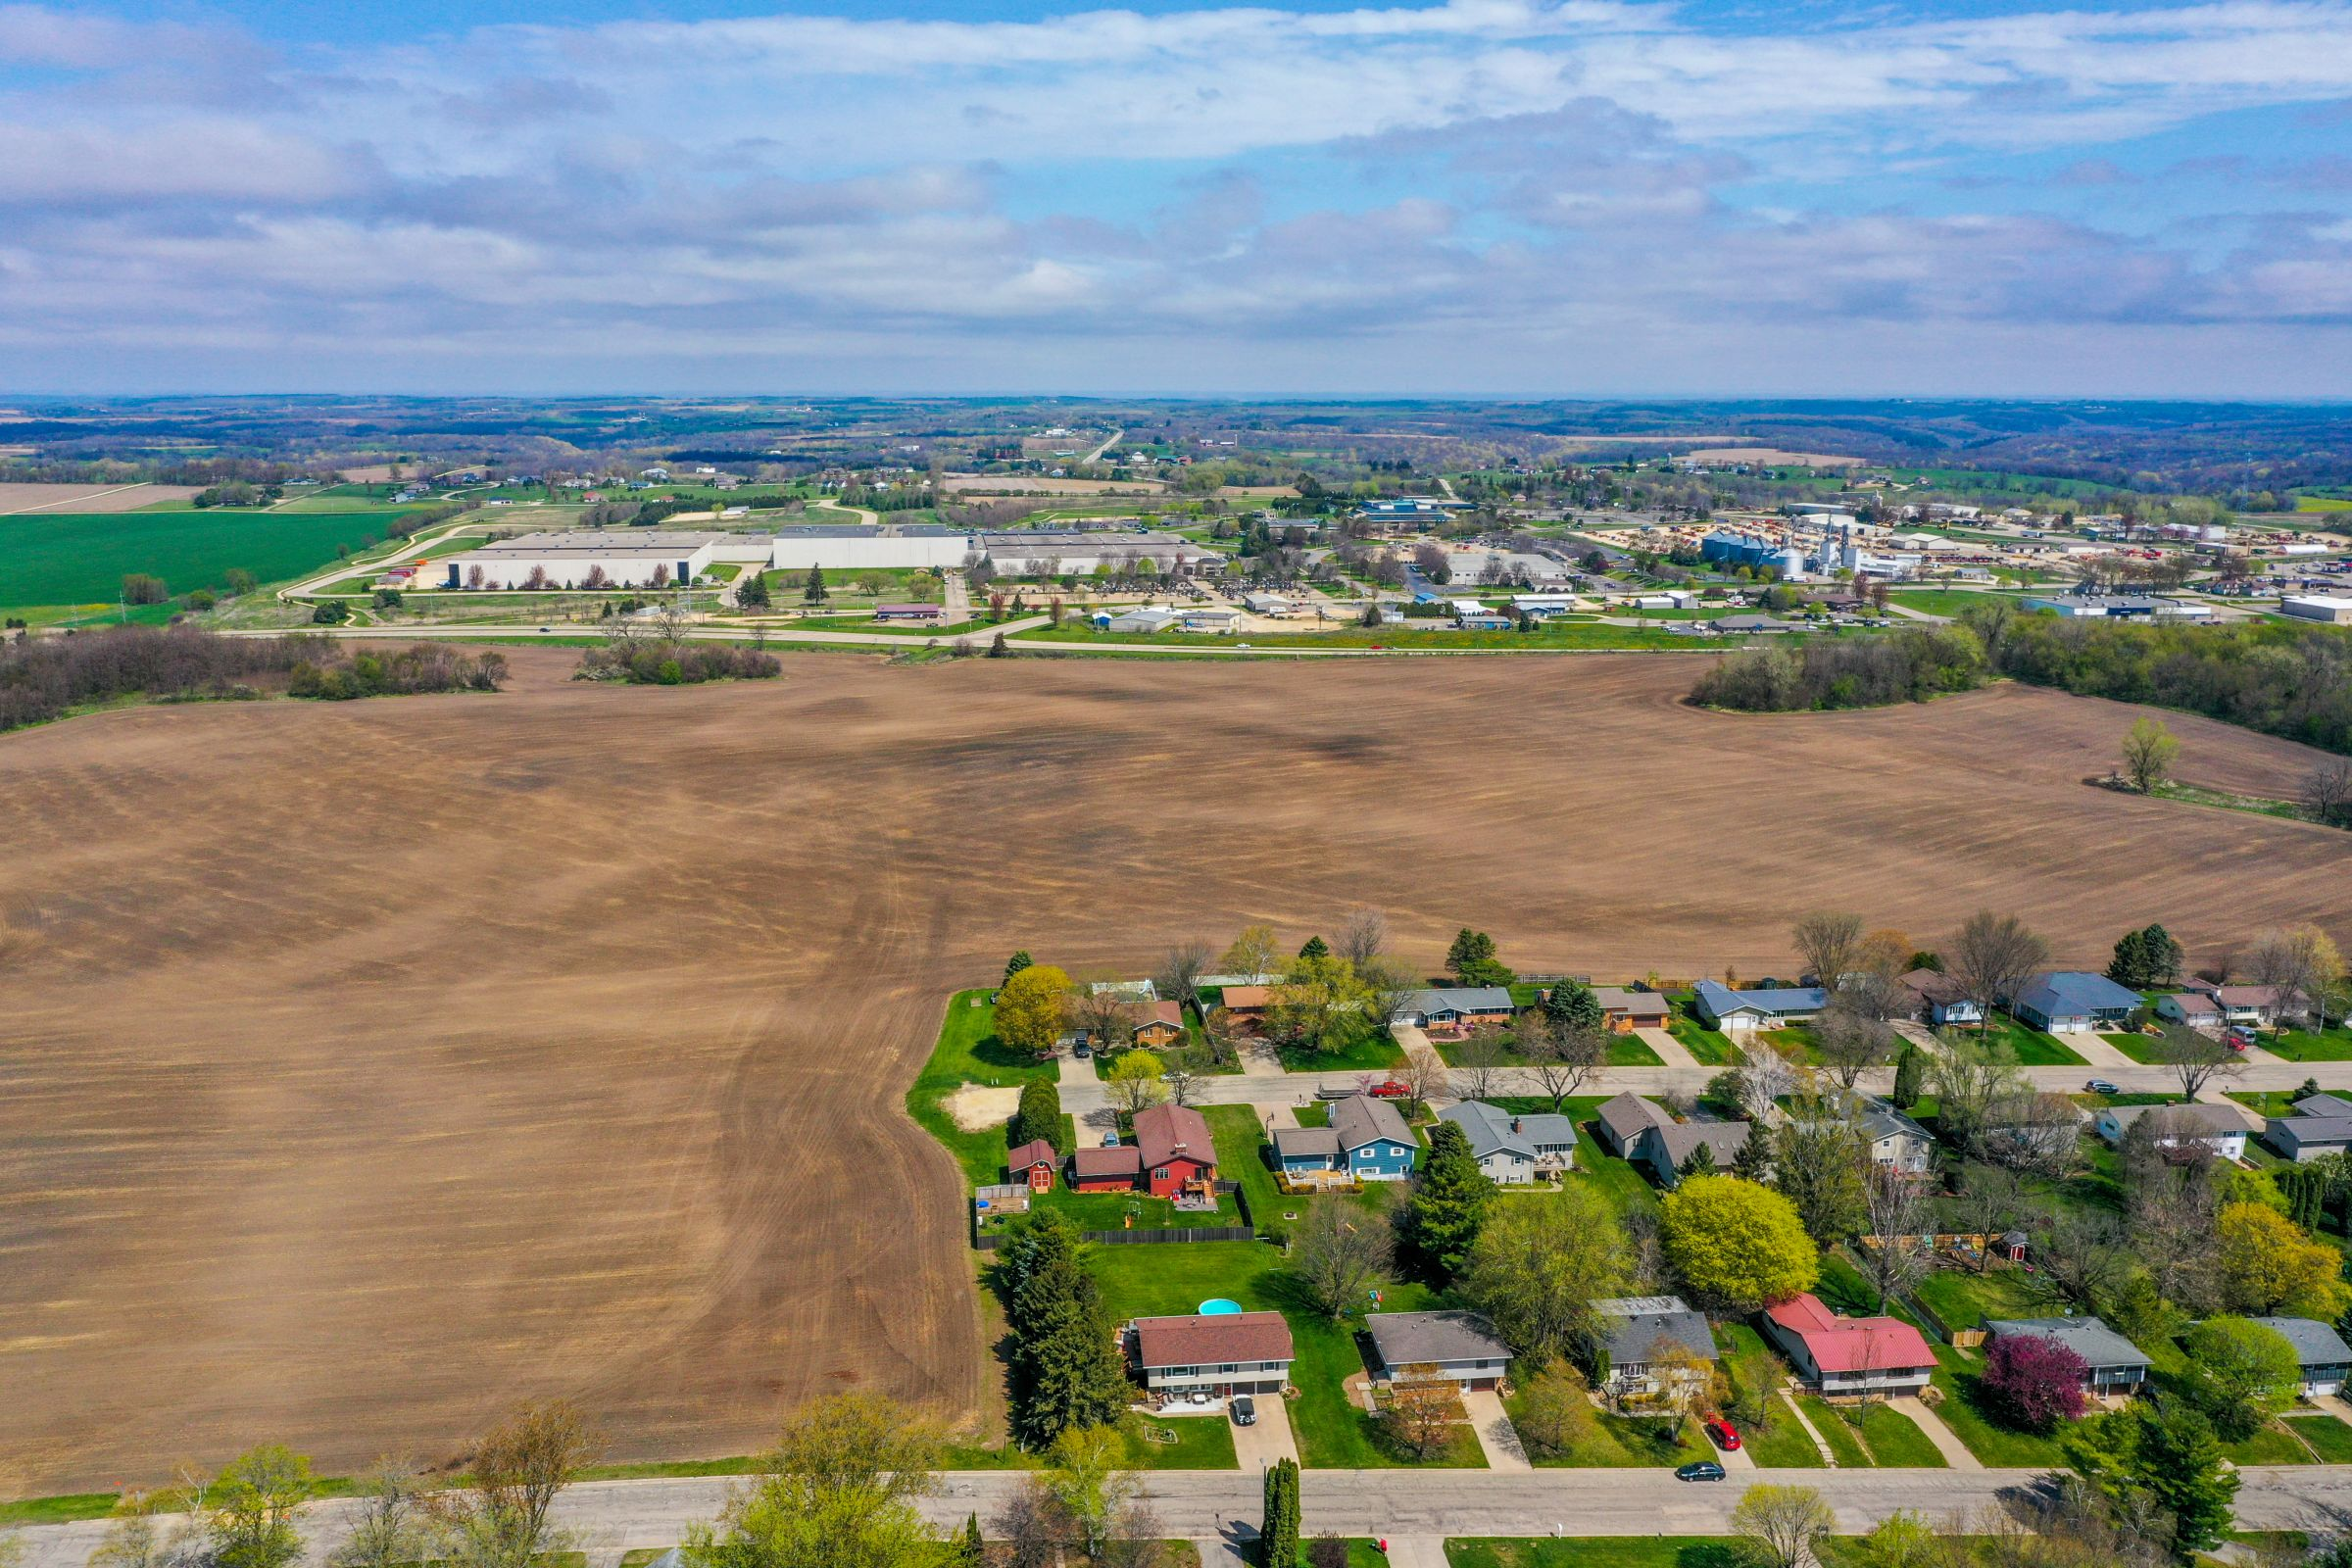 development-land-commercial-iowa-county-wisconsin-152-acres-listing-number-15474-0-2021-05-18-160114.jpg